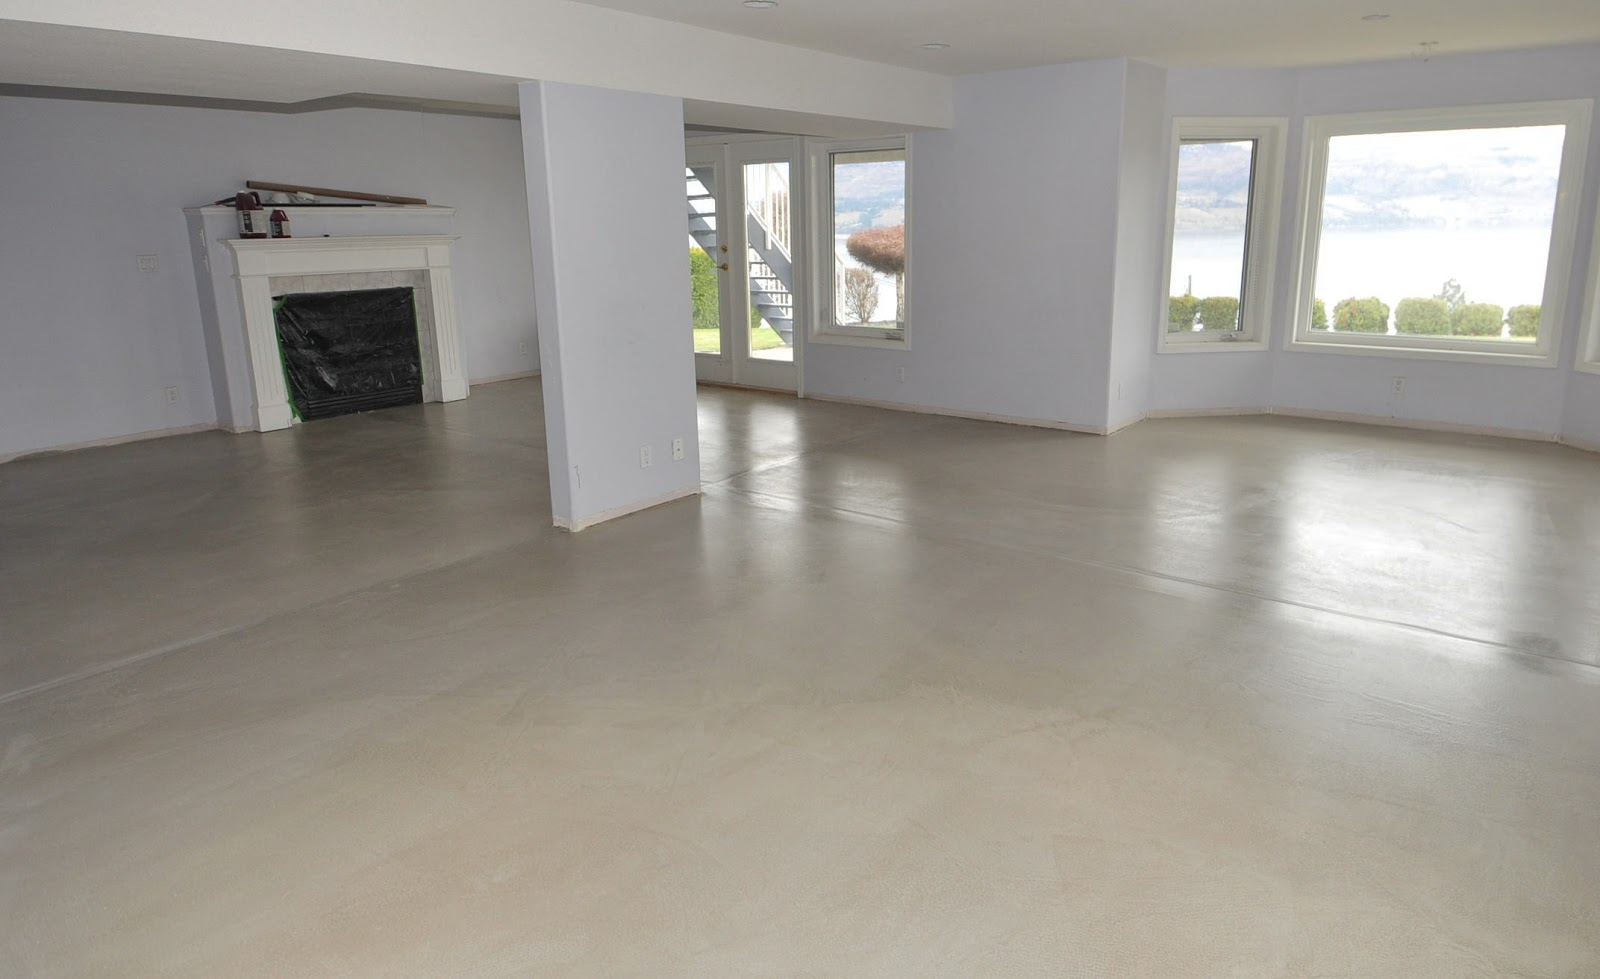 Mode concrete cool and modern concrete floors for Best way to clean painted concrete floors